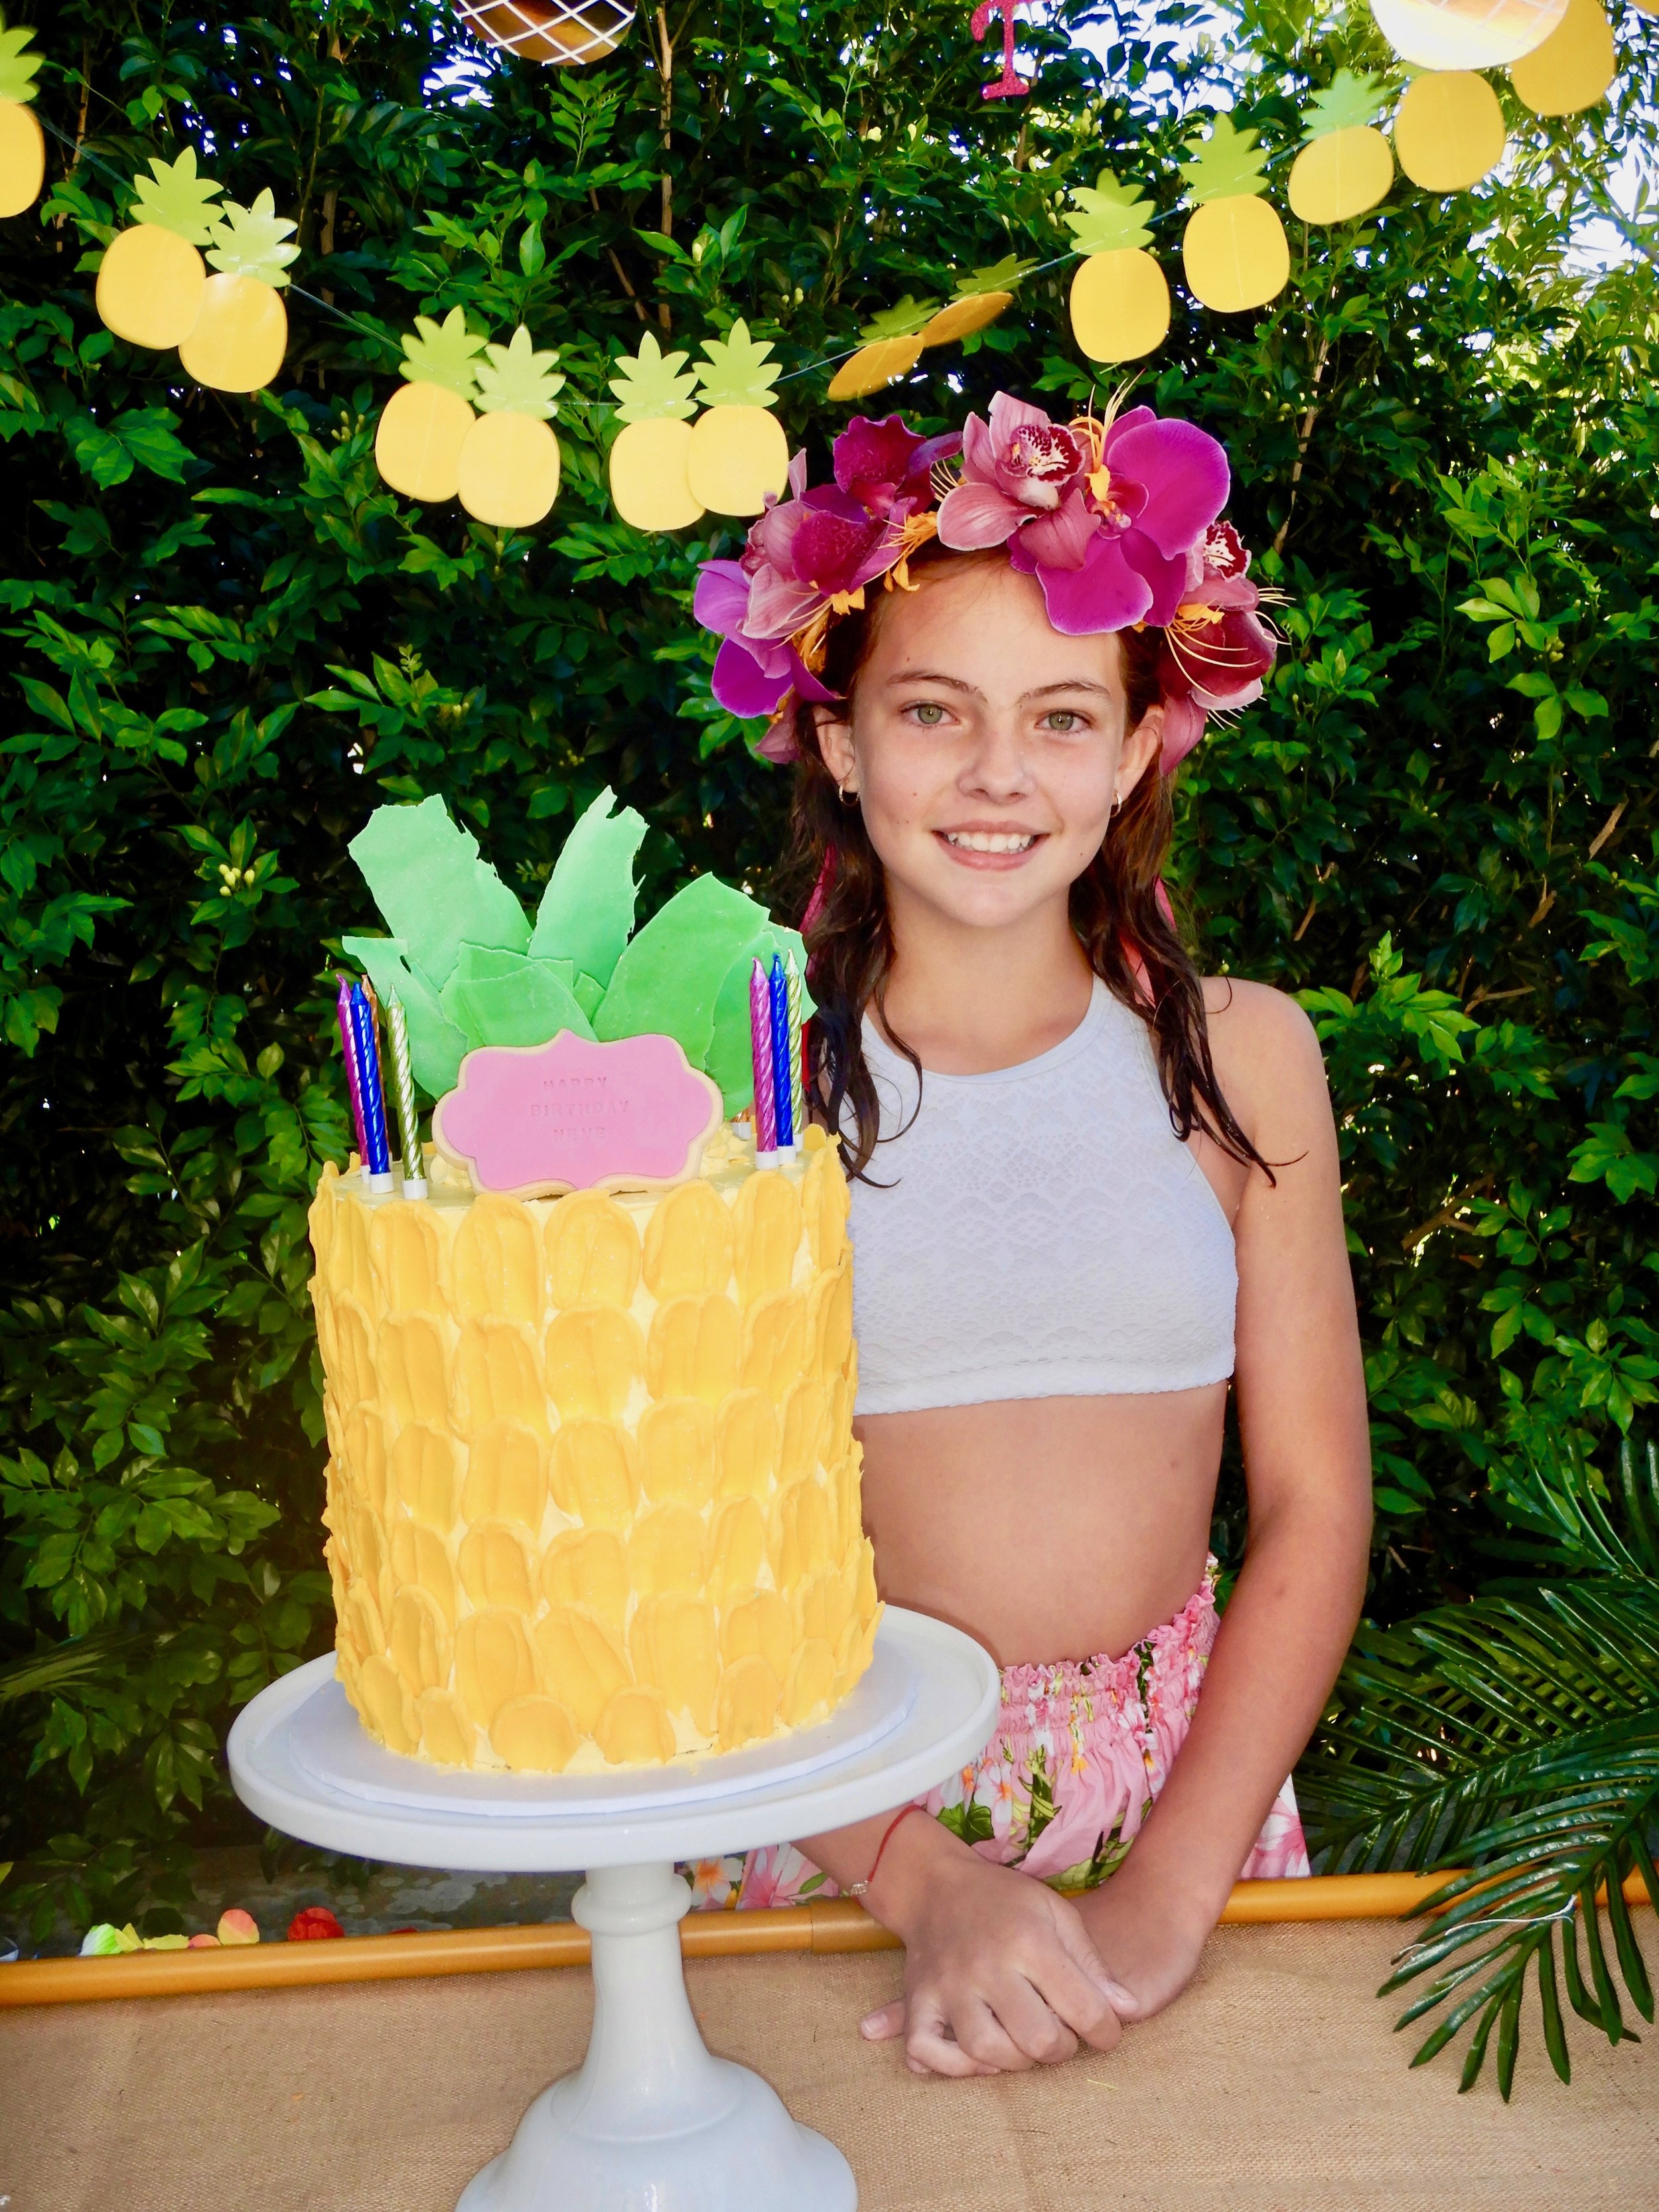 Neve with her Pineapple Cake